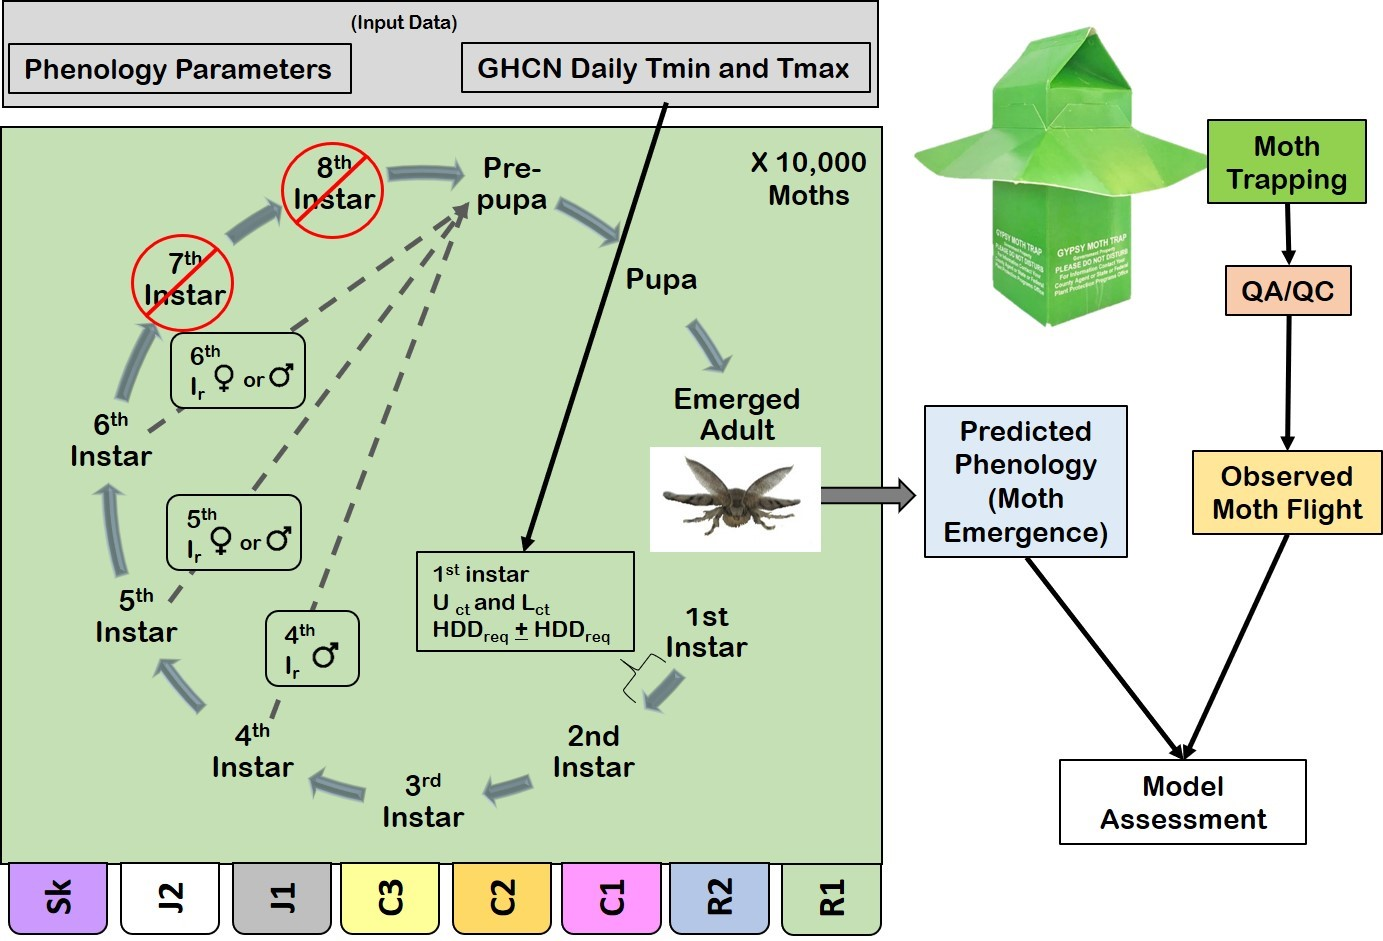 The agent-based phenology model is represented by a green box with a circular flow diagram and demonstrates the multiple paths through different numbers of instars that moths may follow on their way to pupation. Tabs below the box represent the multiple populations, each of which has population-specific parameters and numbers of instars. Boxes along the right describe the process flow for the assessment of the model. Note that the model produces the parameter 'moth emergence', while the trap data documents moth flight, the timing of which may differ from moth emergence.